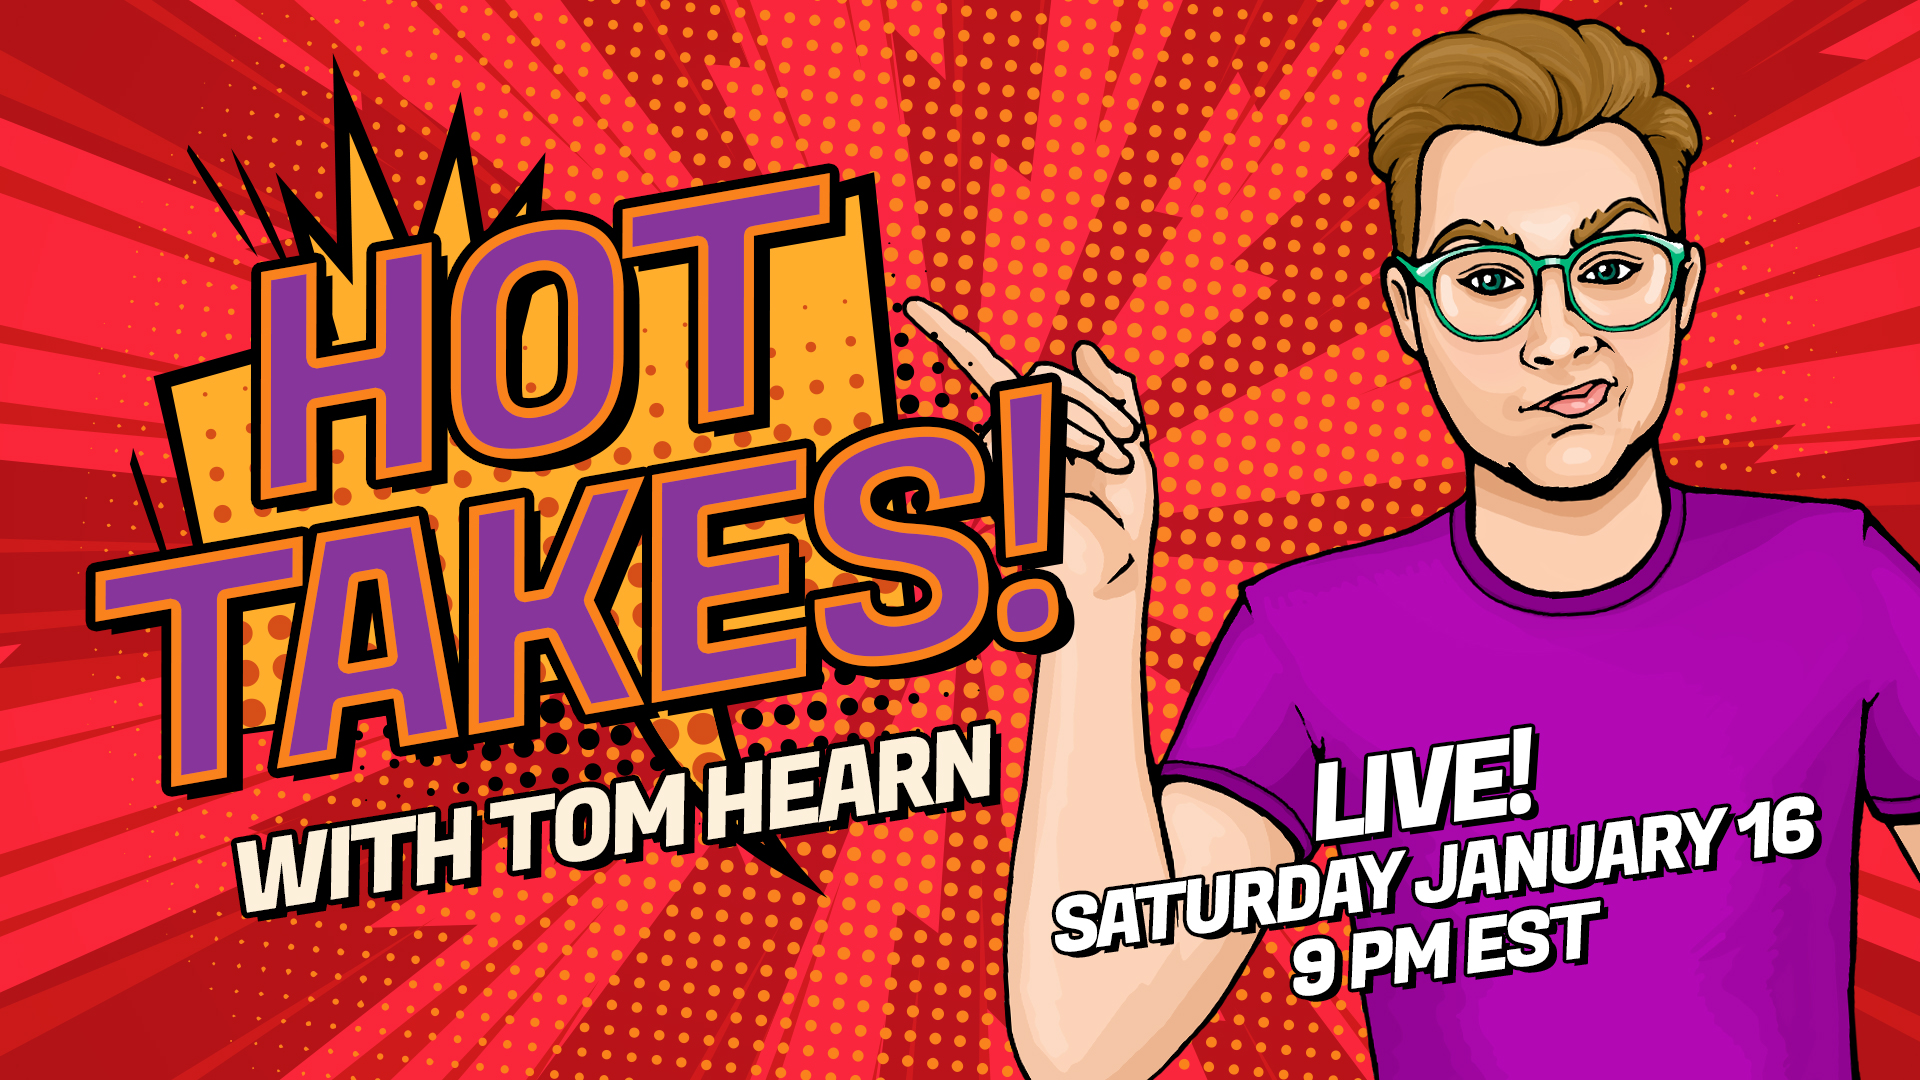 Promotional image for Hot Takes with Tom Hearn